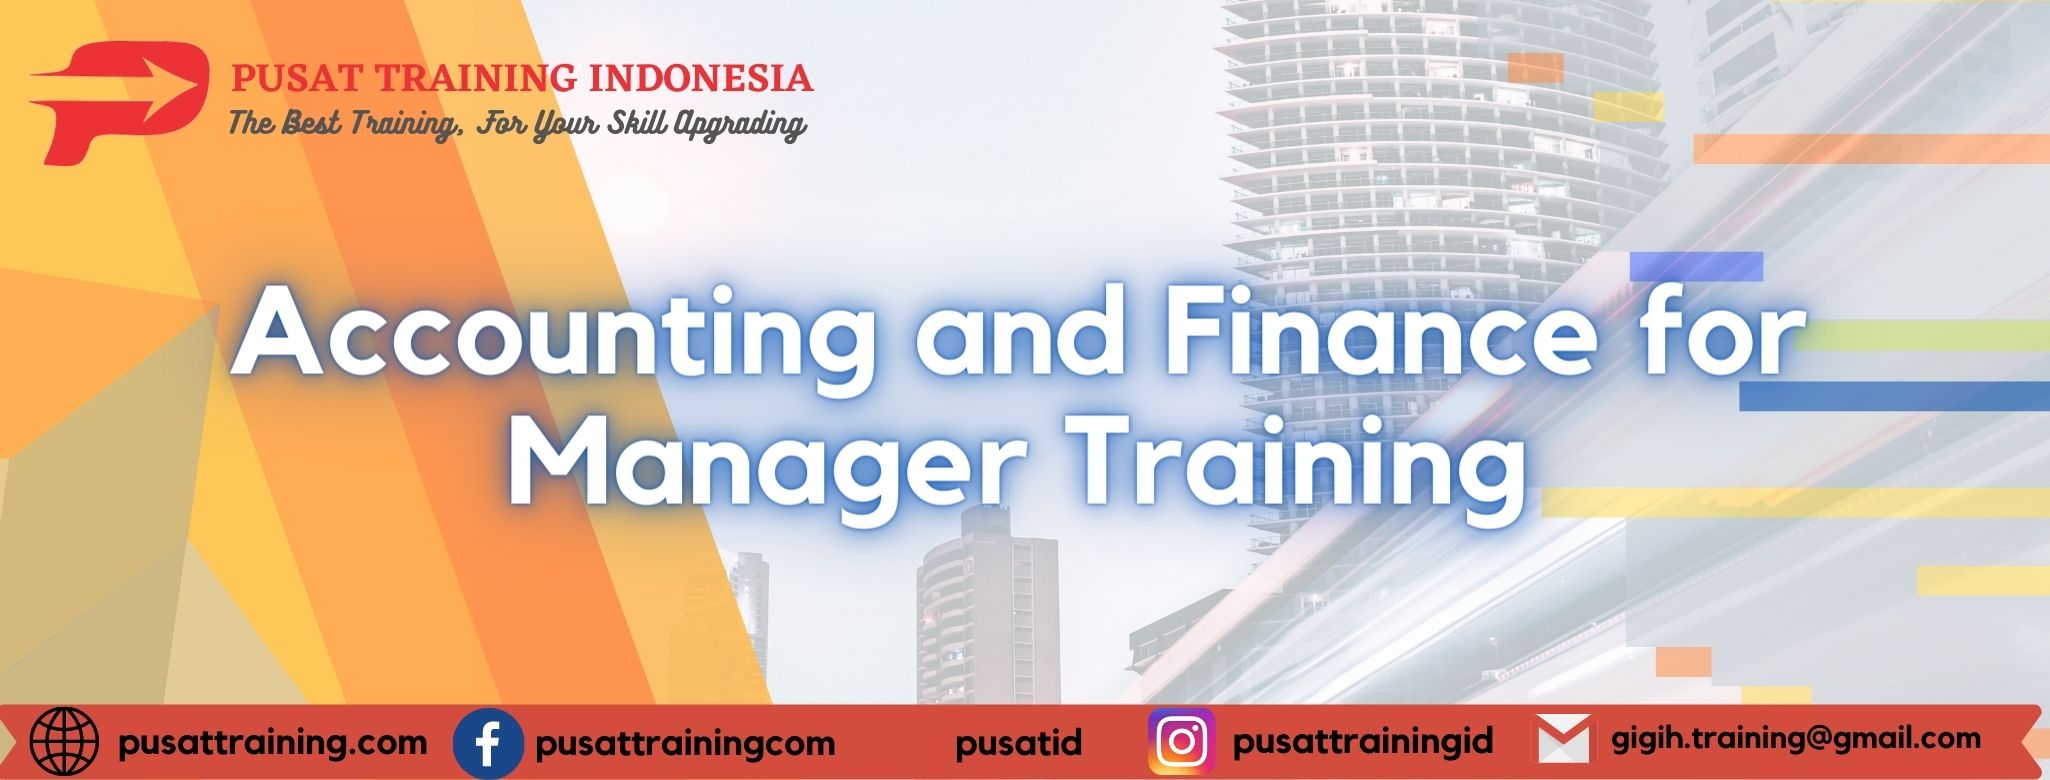 Accounting-and-Finance-for-Manager-Training